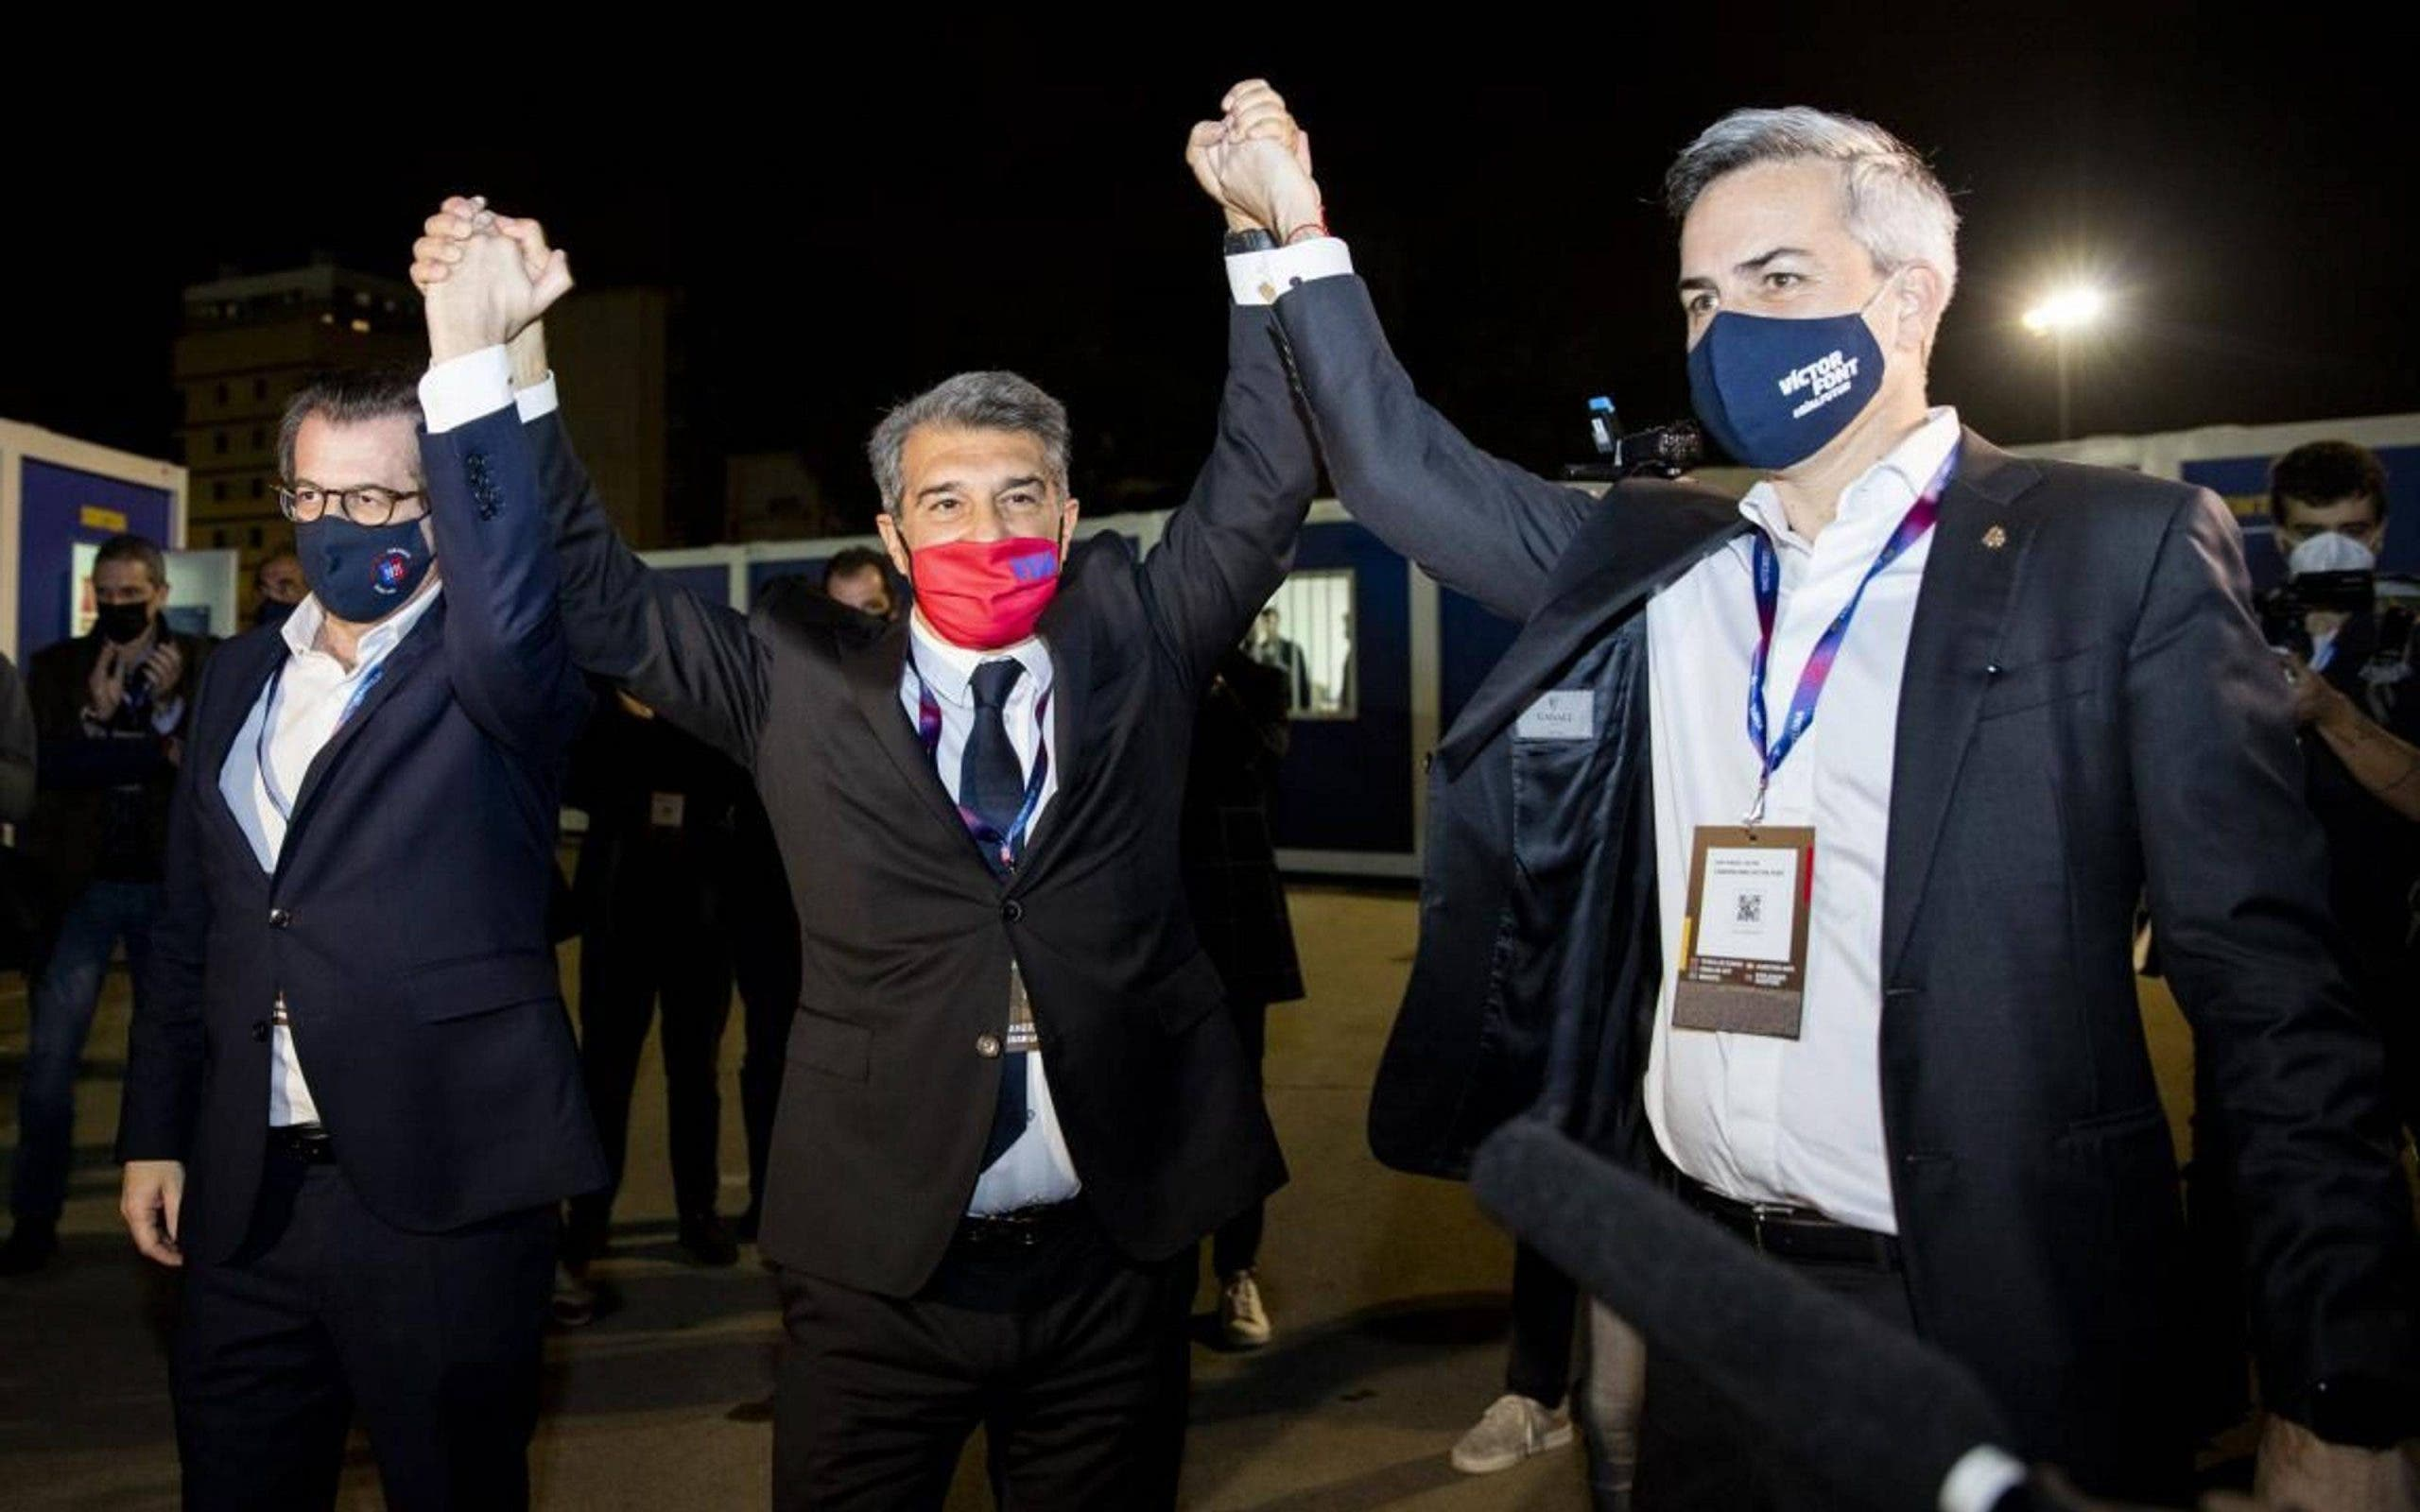 Joan Laporta (centre) with rival candidates Toni Freixa (left) and Victor Font